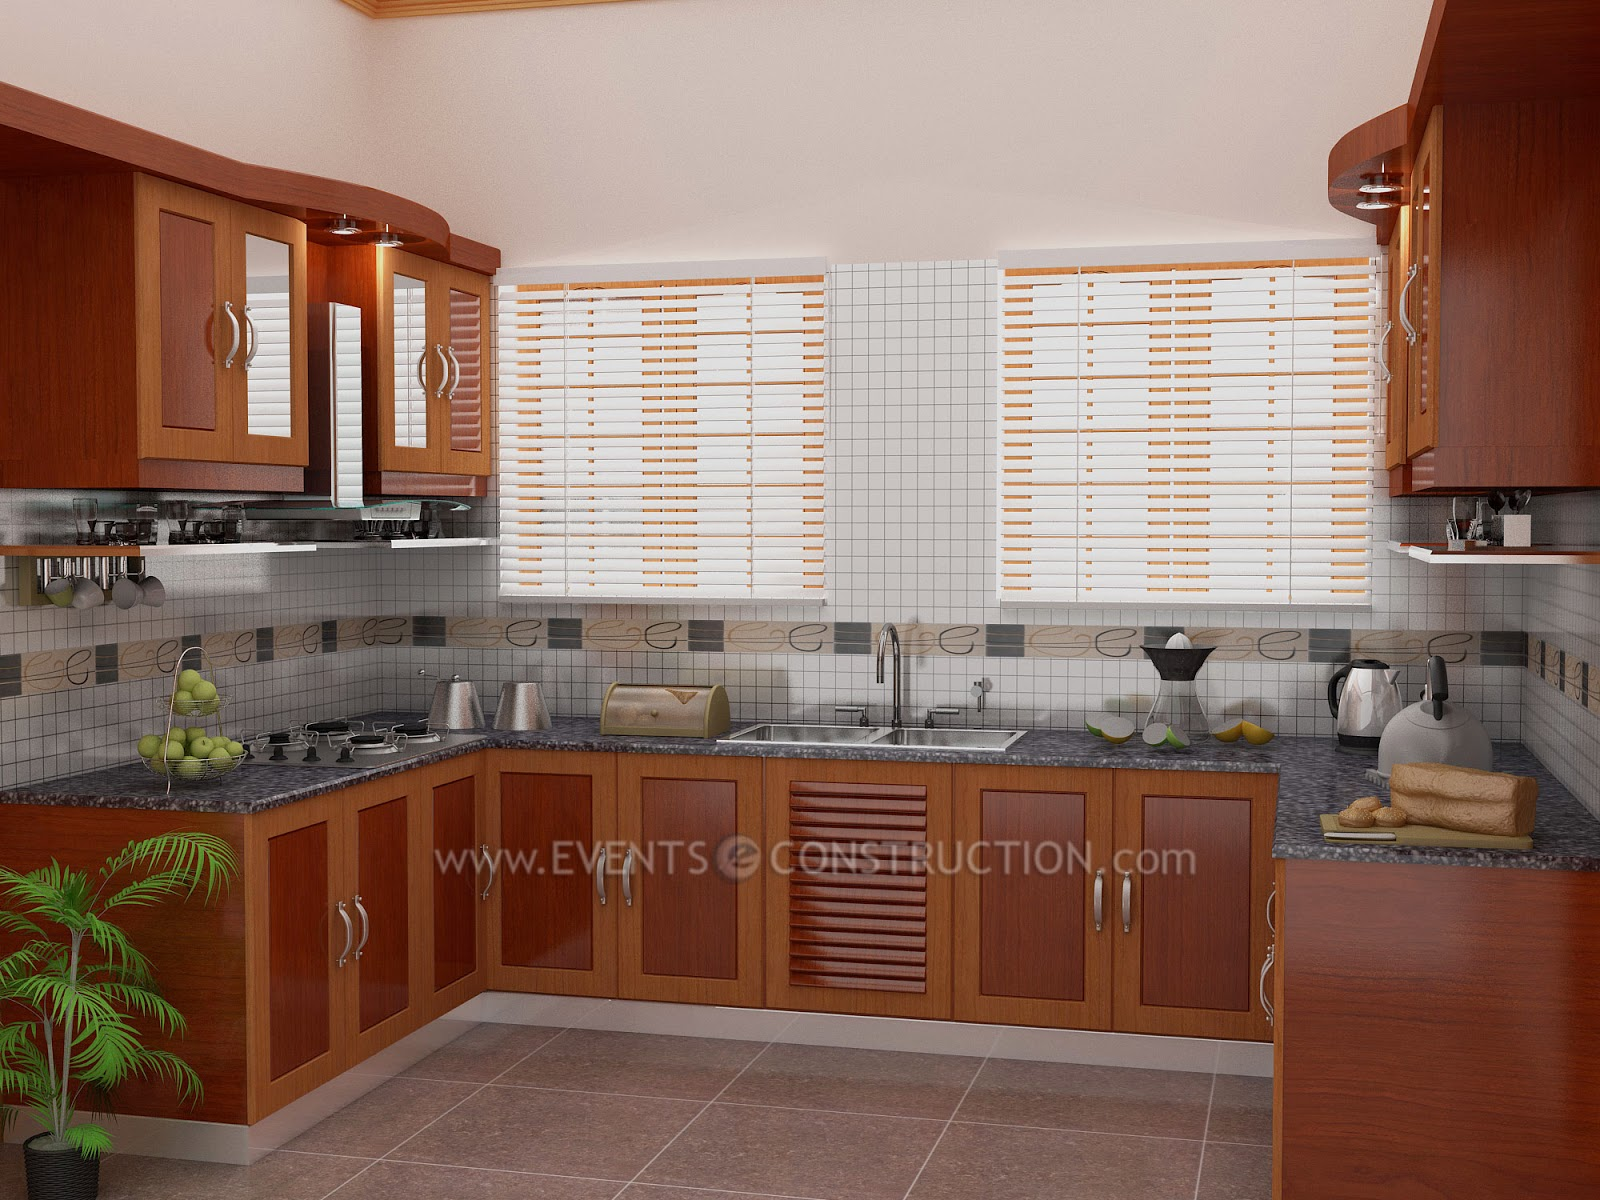 Evens Construction Pvt Ltd Simple Kerala Kitchen Design